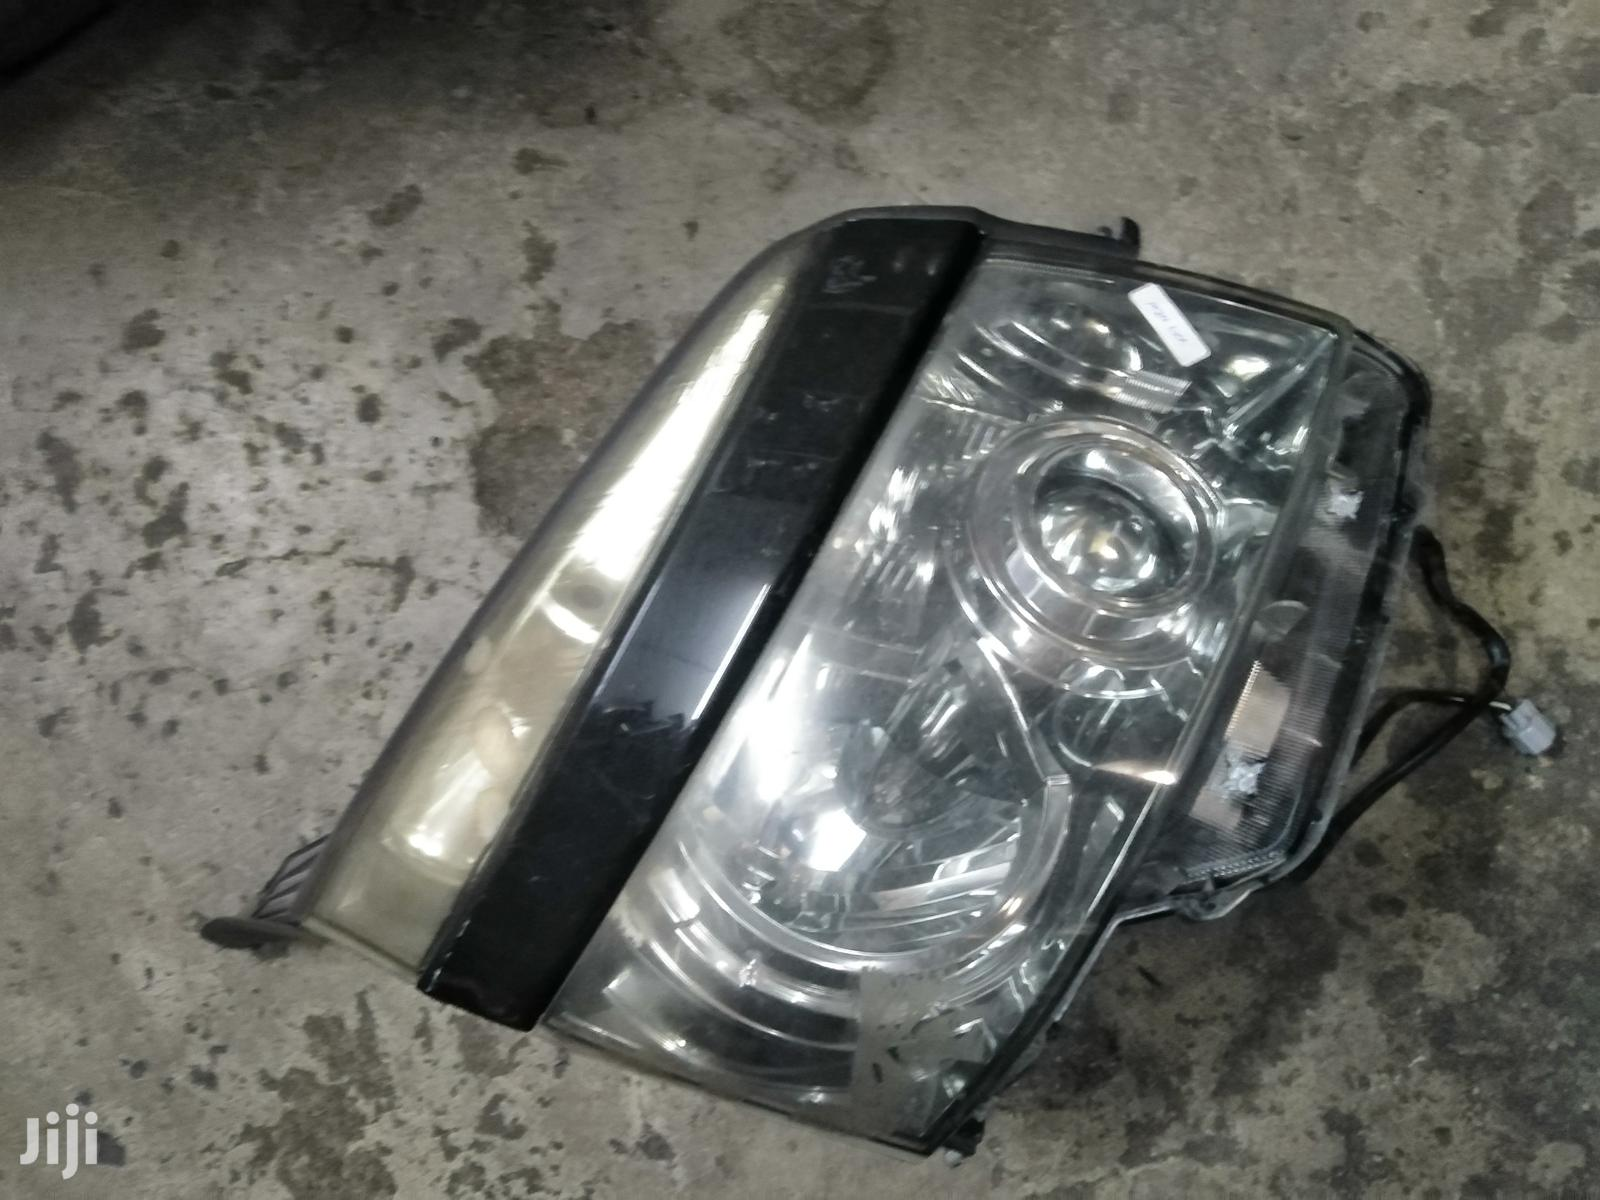 Voxy 2008 Headlight Zenon